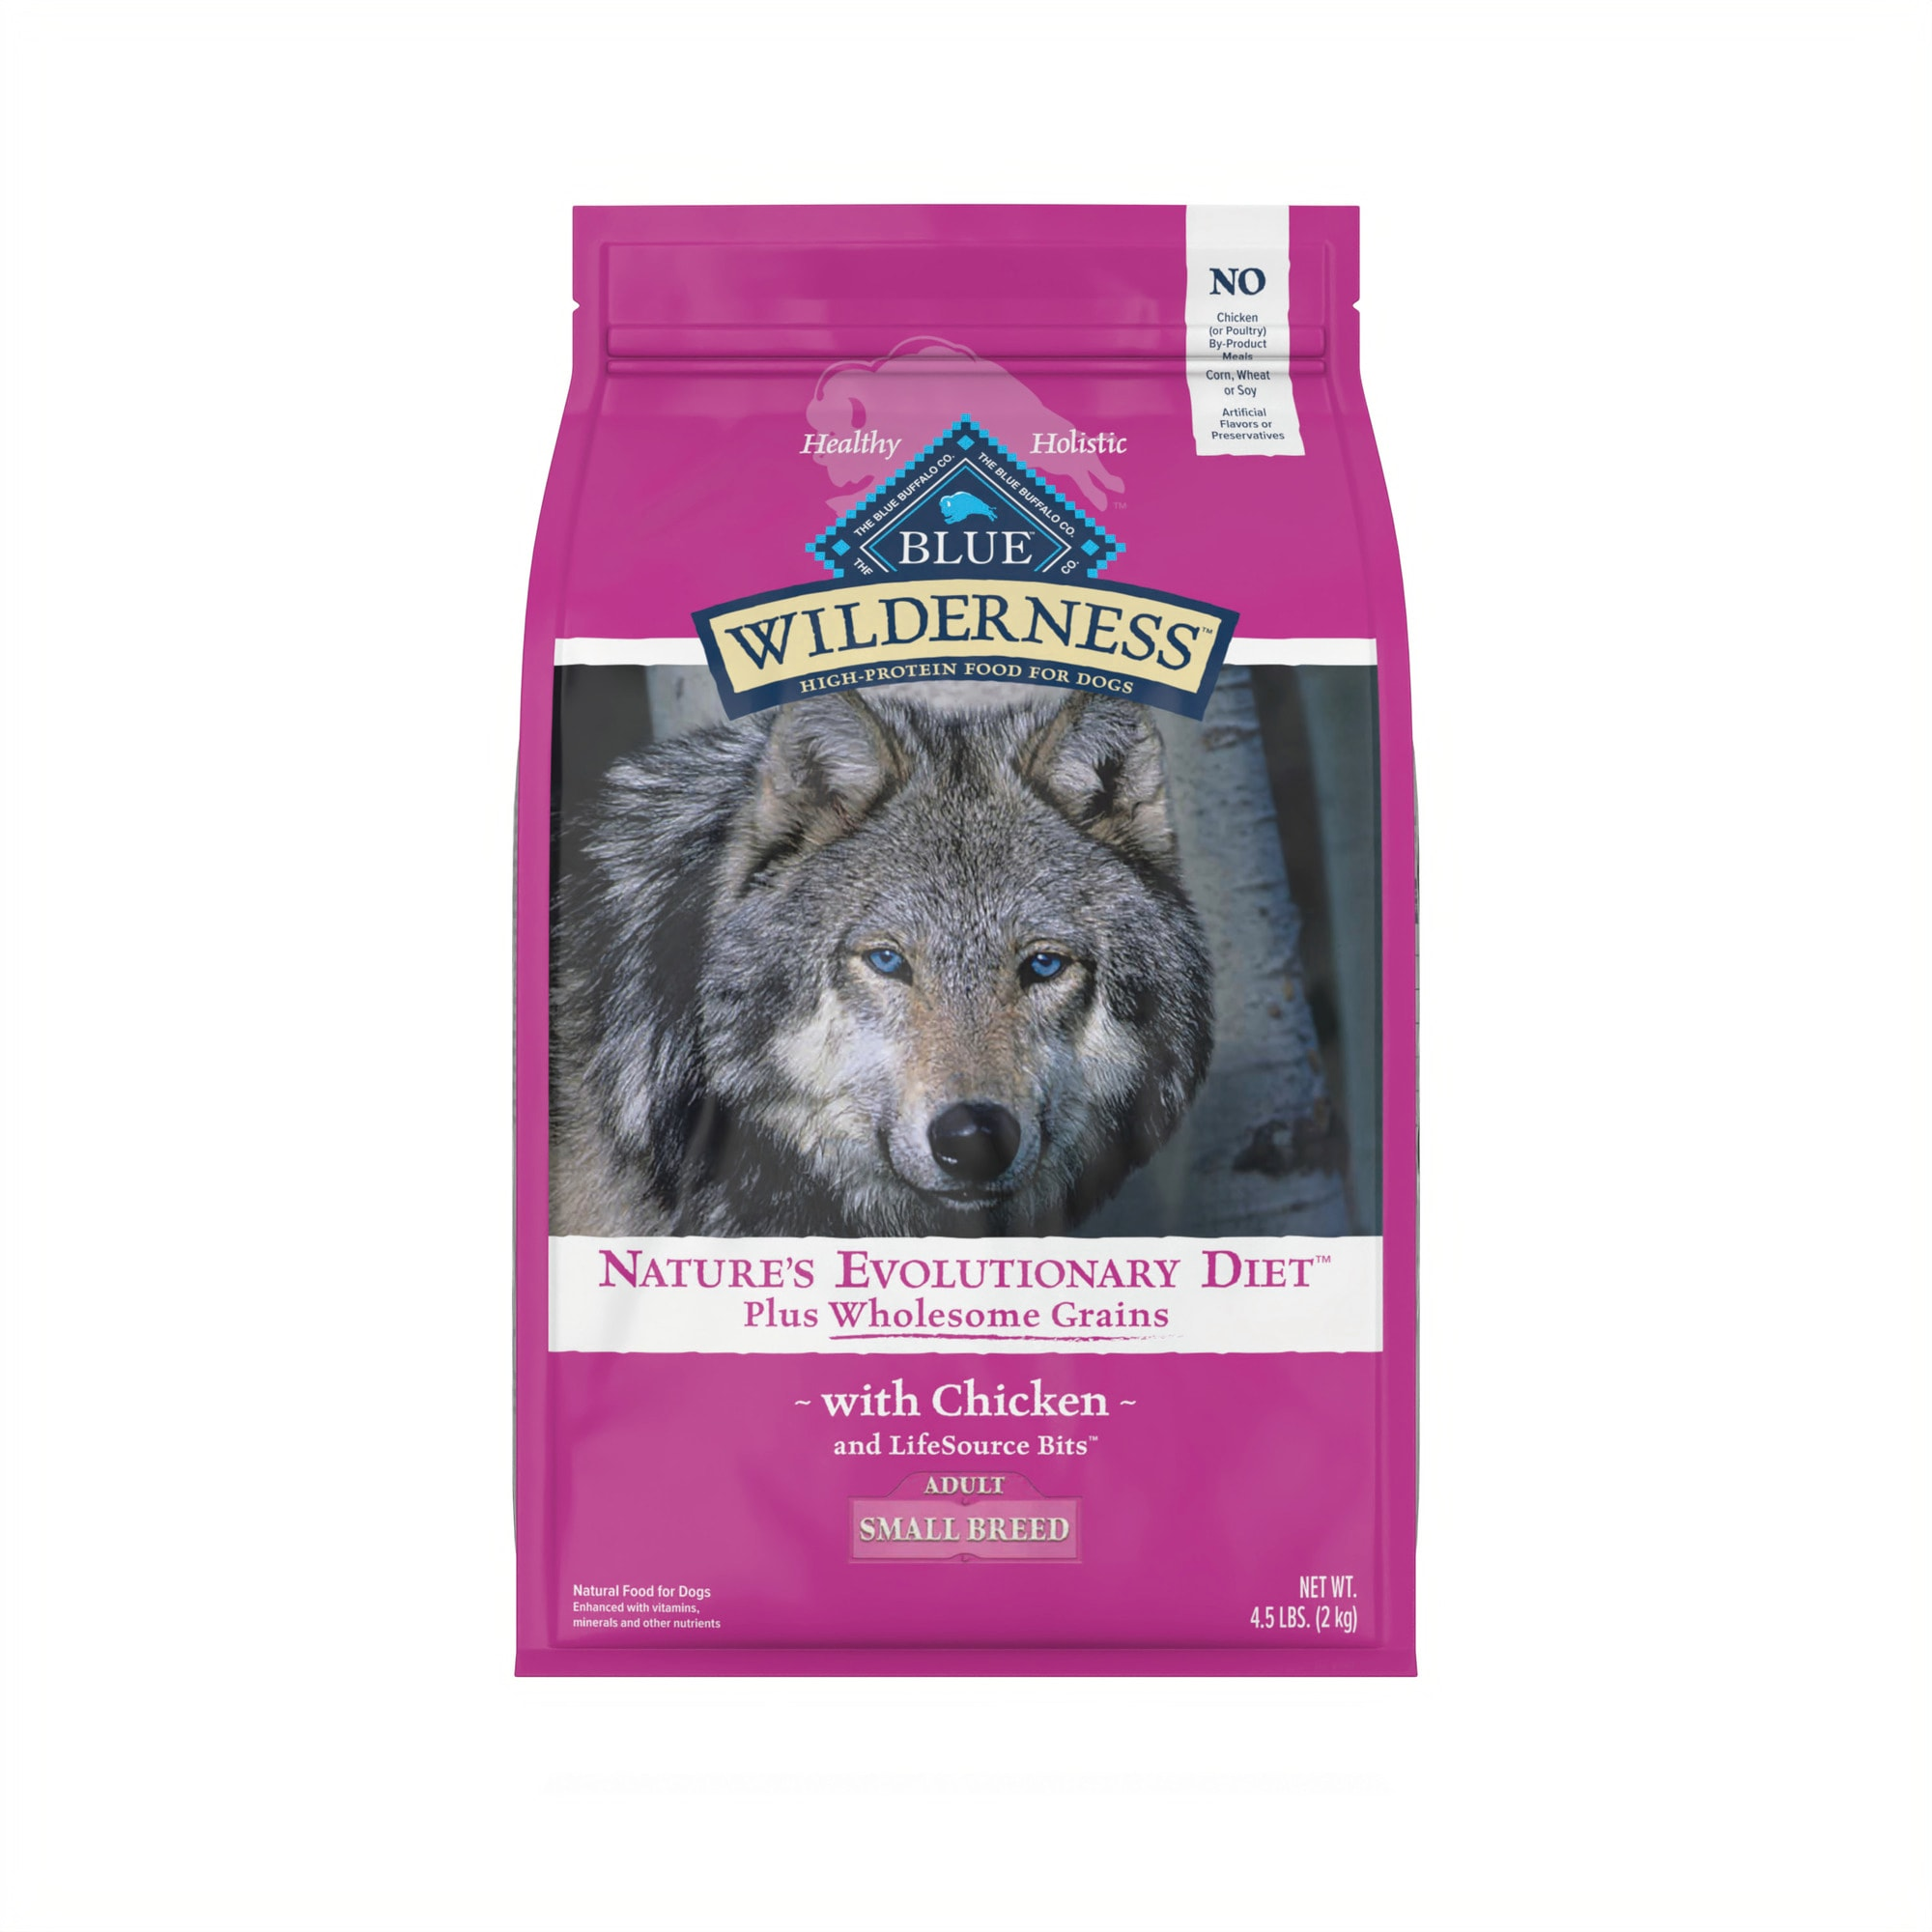 BLUE Wilderness natural dry dog food satisfies the spirit of the wolf in your canine with more of the meat dogs love and is enhanced with vitamins, minerals and other nutrients. This high protein small breed dog food starts with delicious, protein-rich chicken, contains wholesome grains and features antioxidant-rich LifeSource Bits. Specially formulated for small breed dogs, the high-quality protein plus complex carbohydrates support your small dog\\\'s high energy needs.